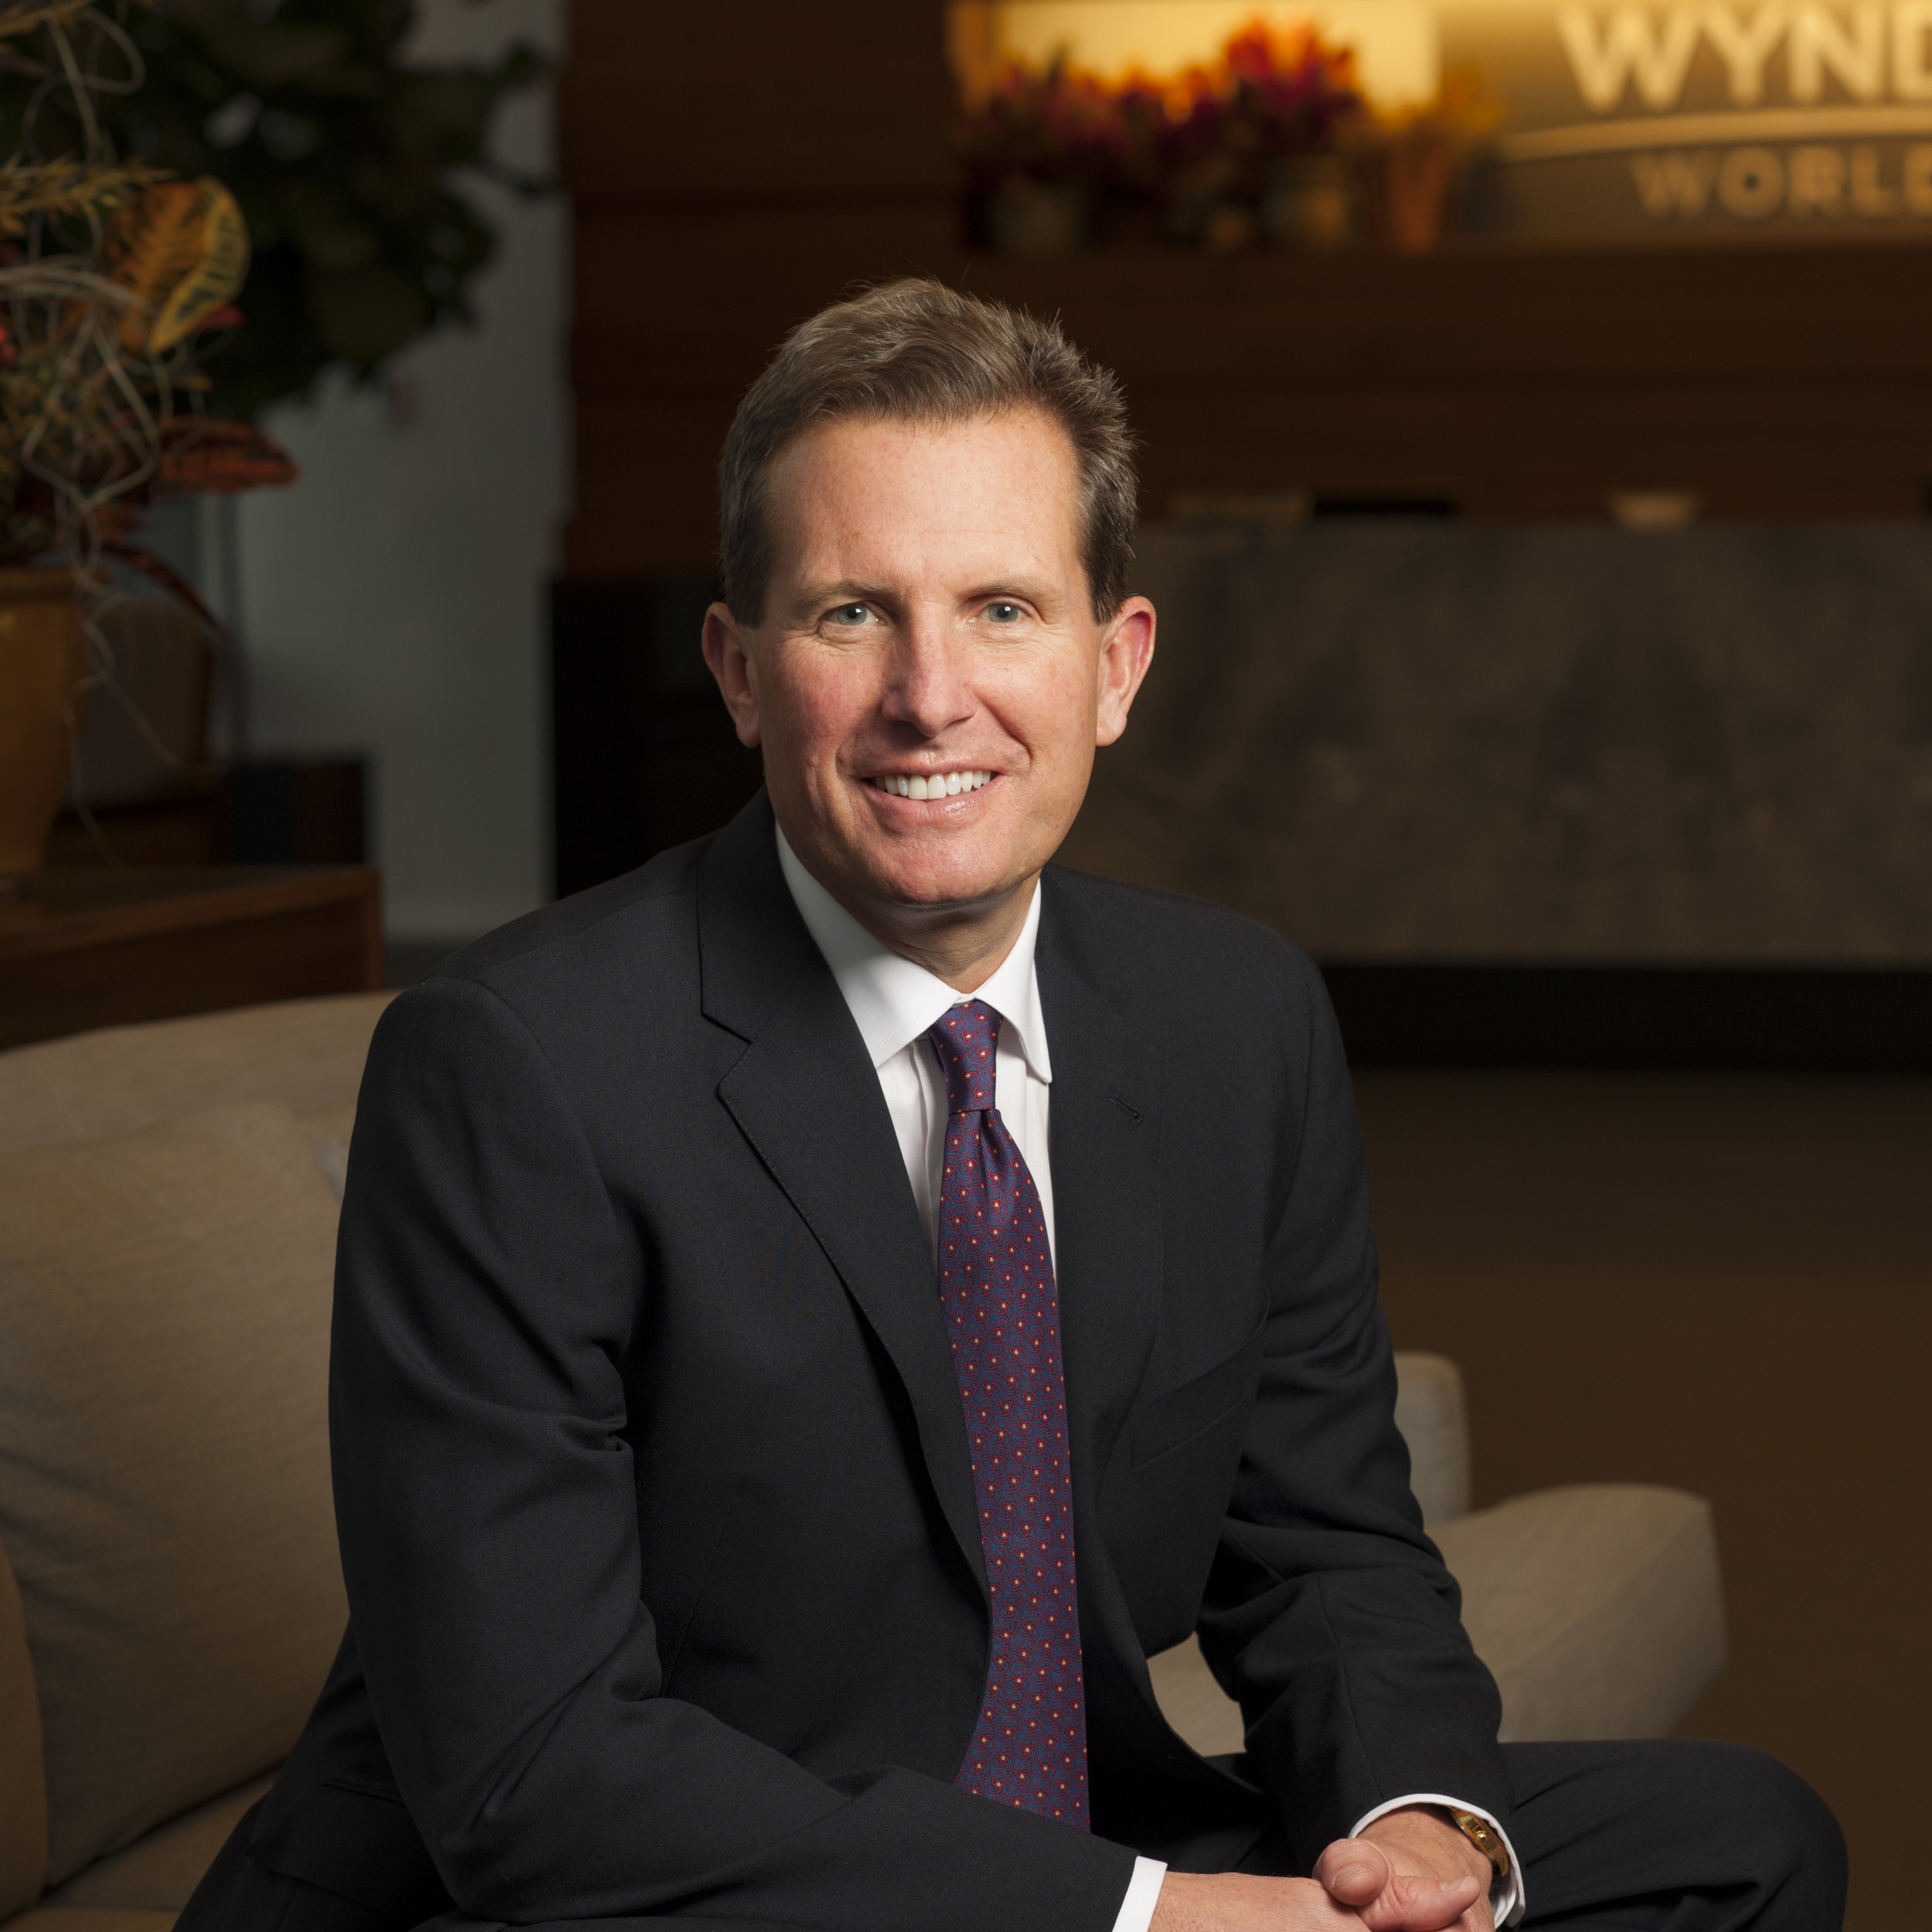 Geoff Balloti - CEO & President of Hotel Division at Wyndham Worldwide Corporation - xxx